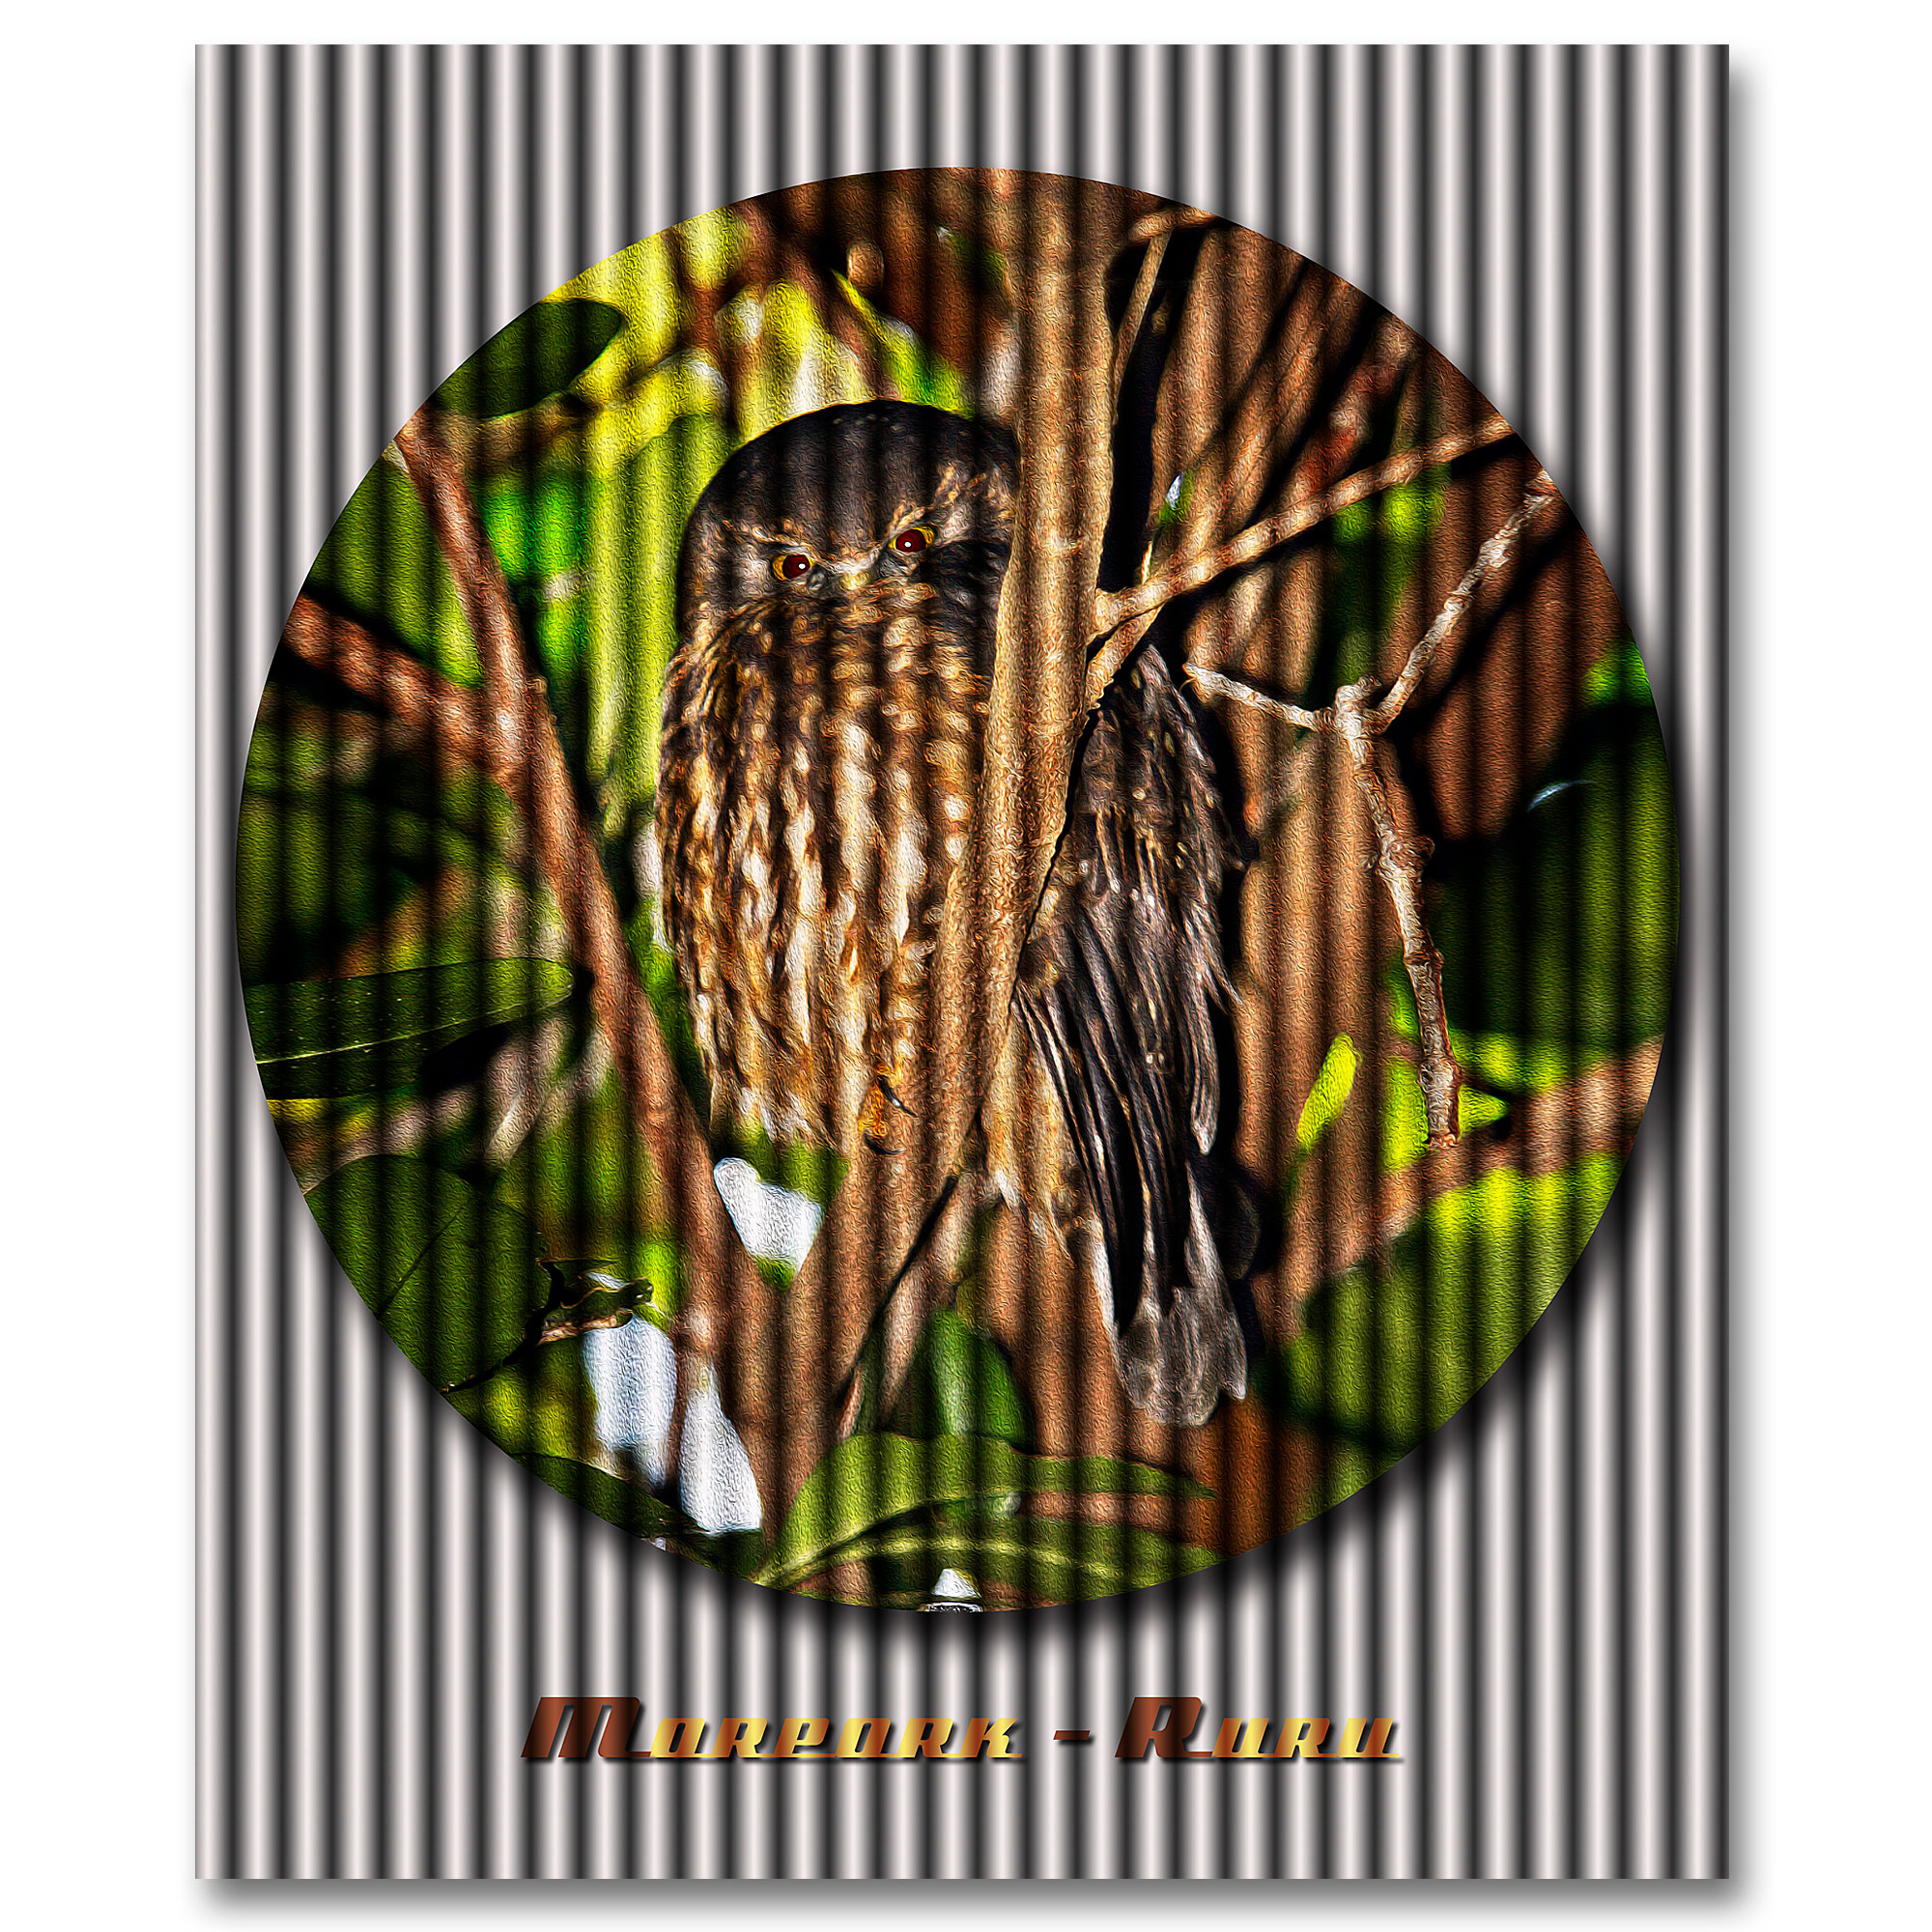 Morepork photography art.